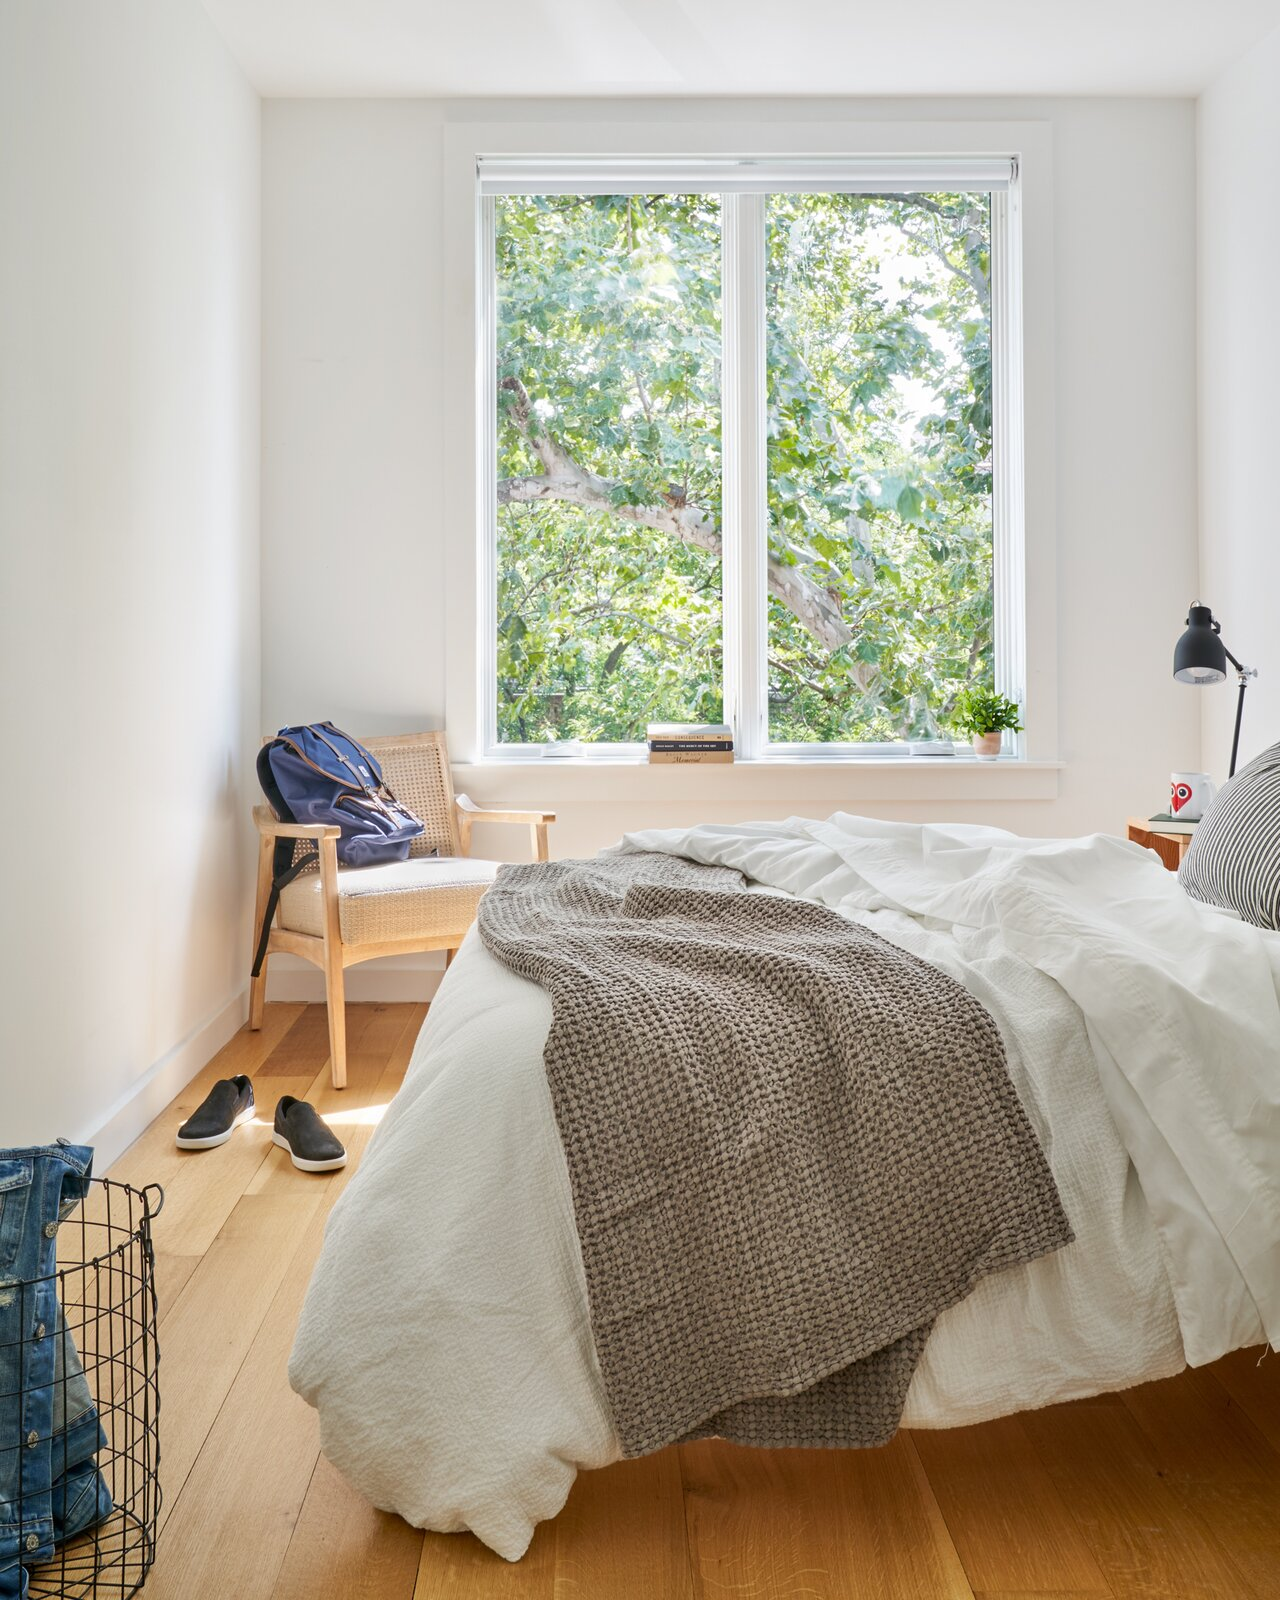 A Common bedroom.  Photo 3 of 11 in Can Co-Living Survive in a Socially Distanced Future?